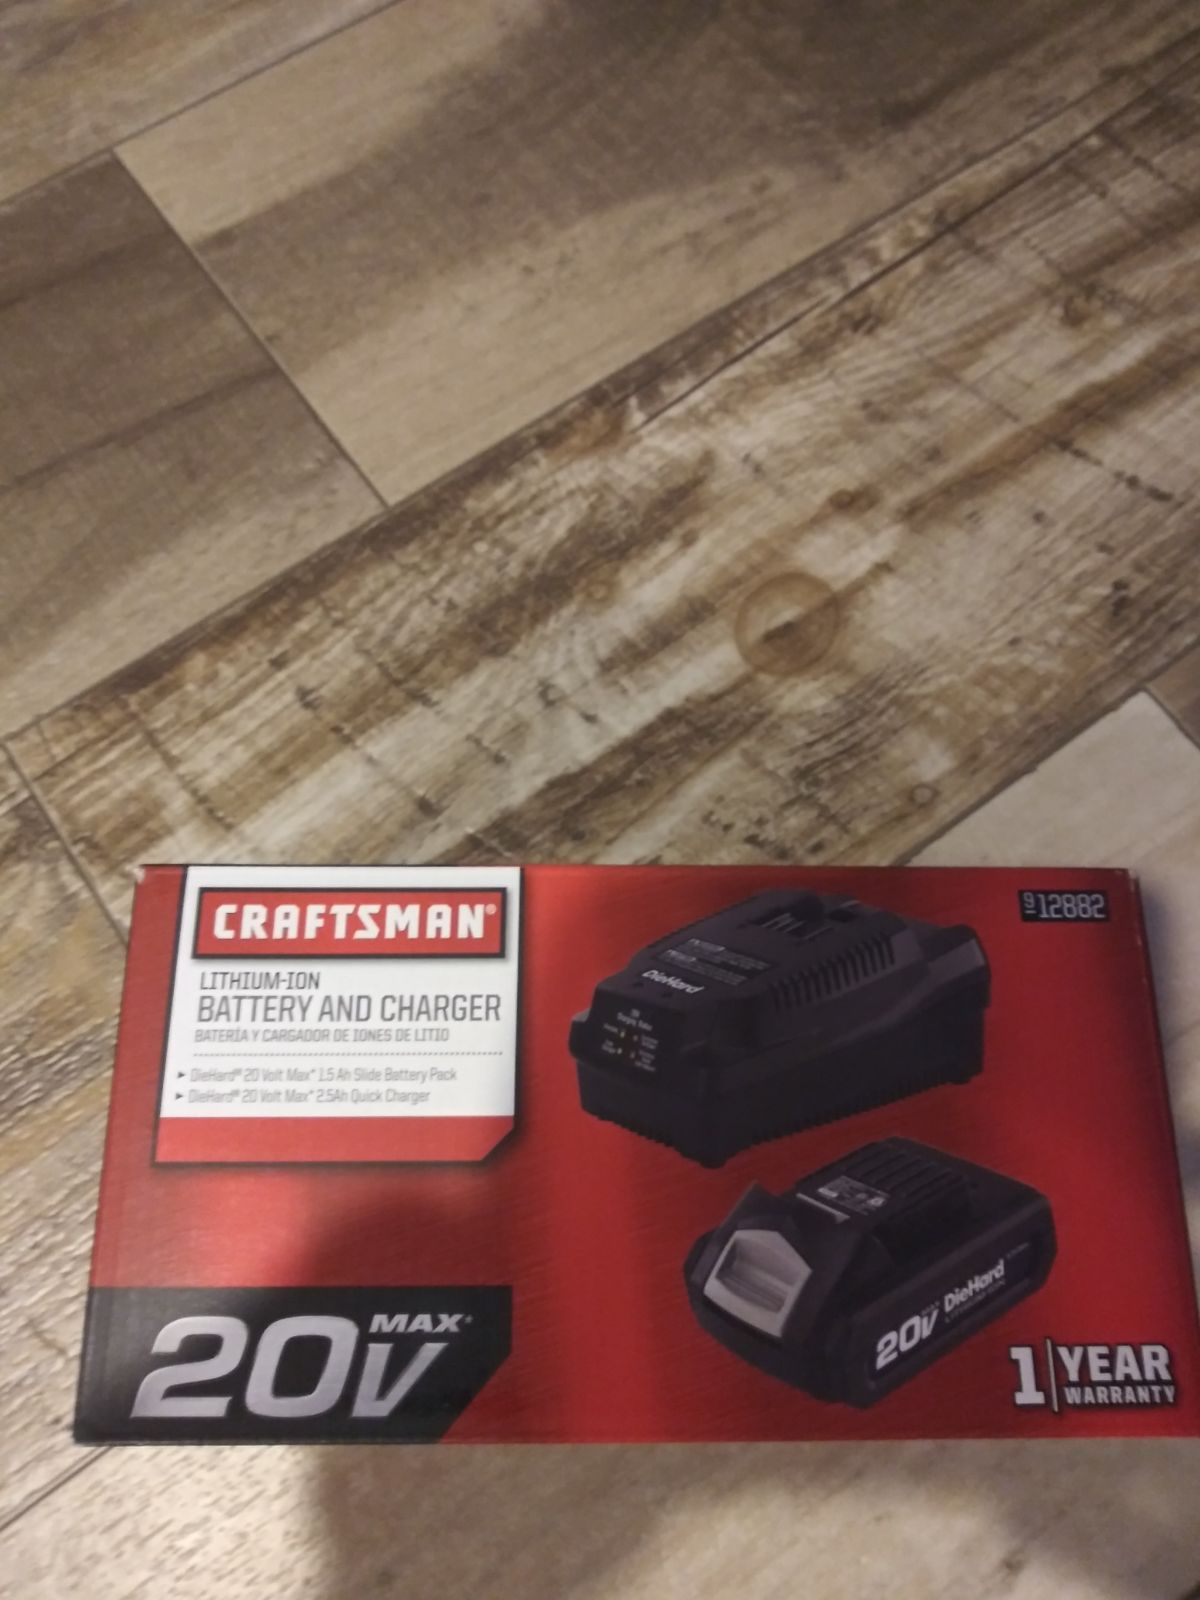 New Craftsman 20 Volt Battery And Charger Charger Craftsman Battery